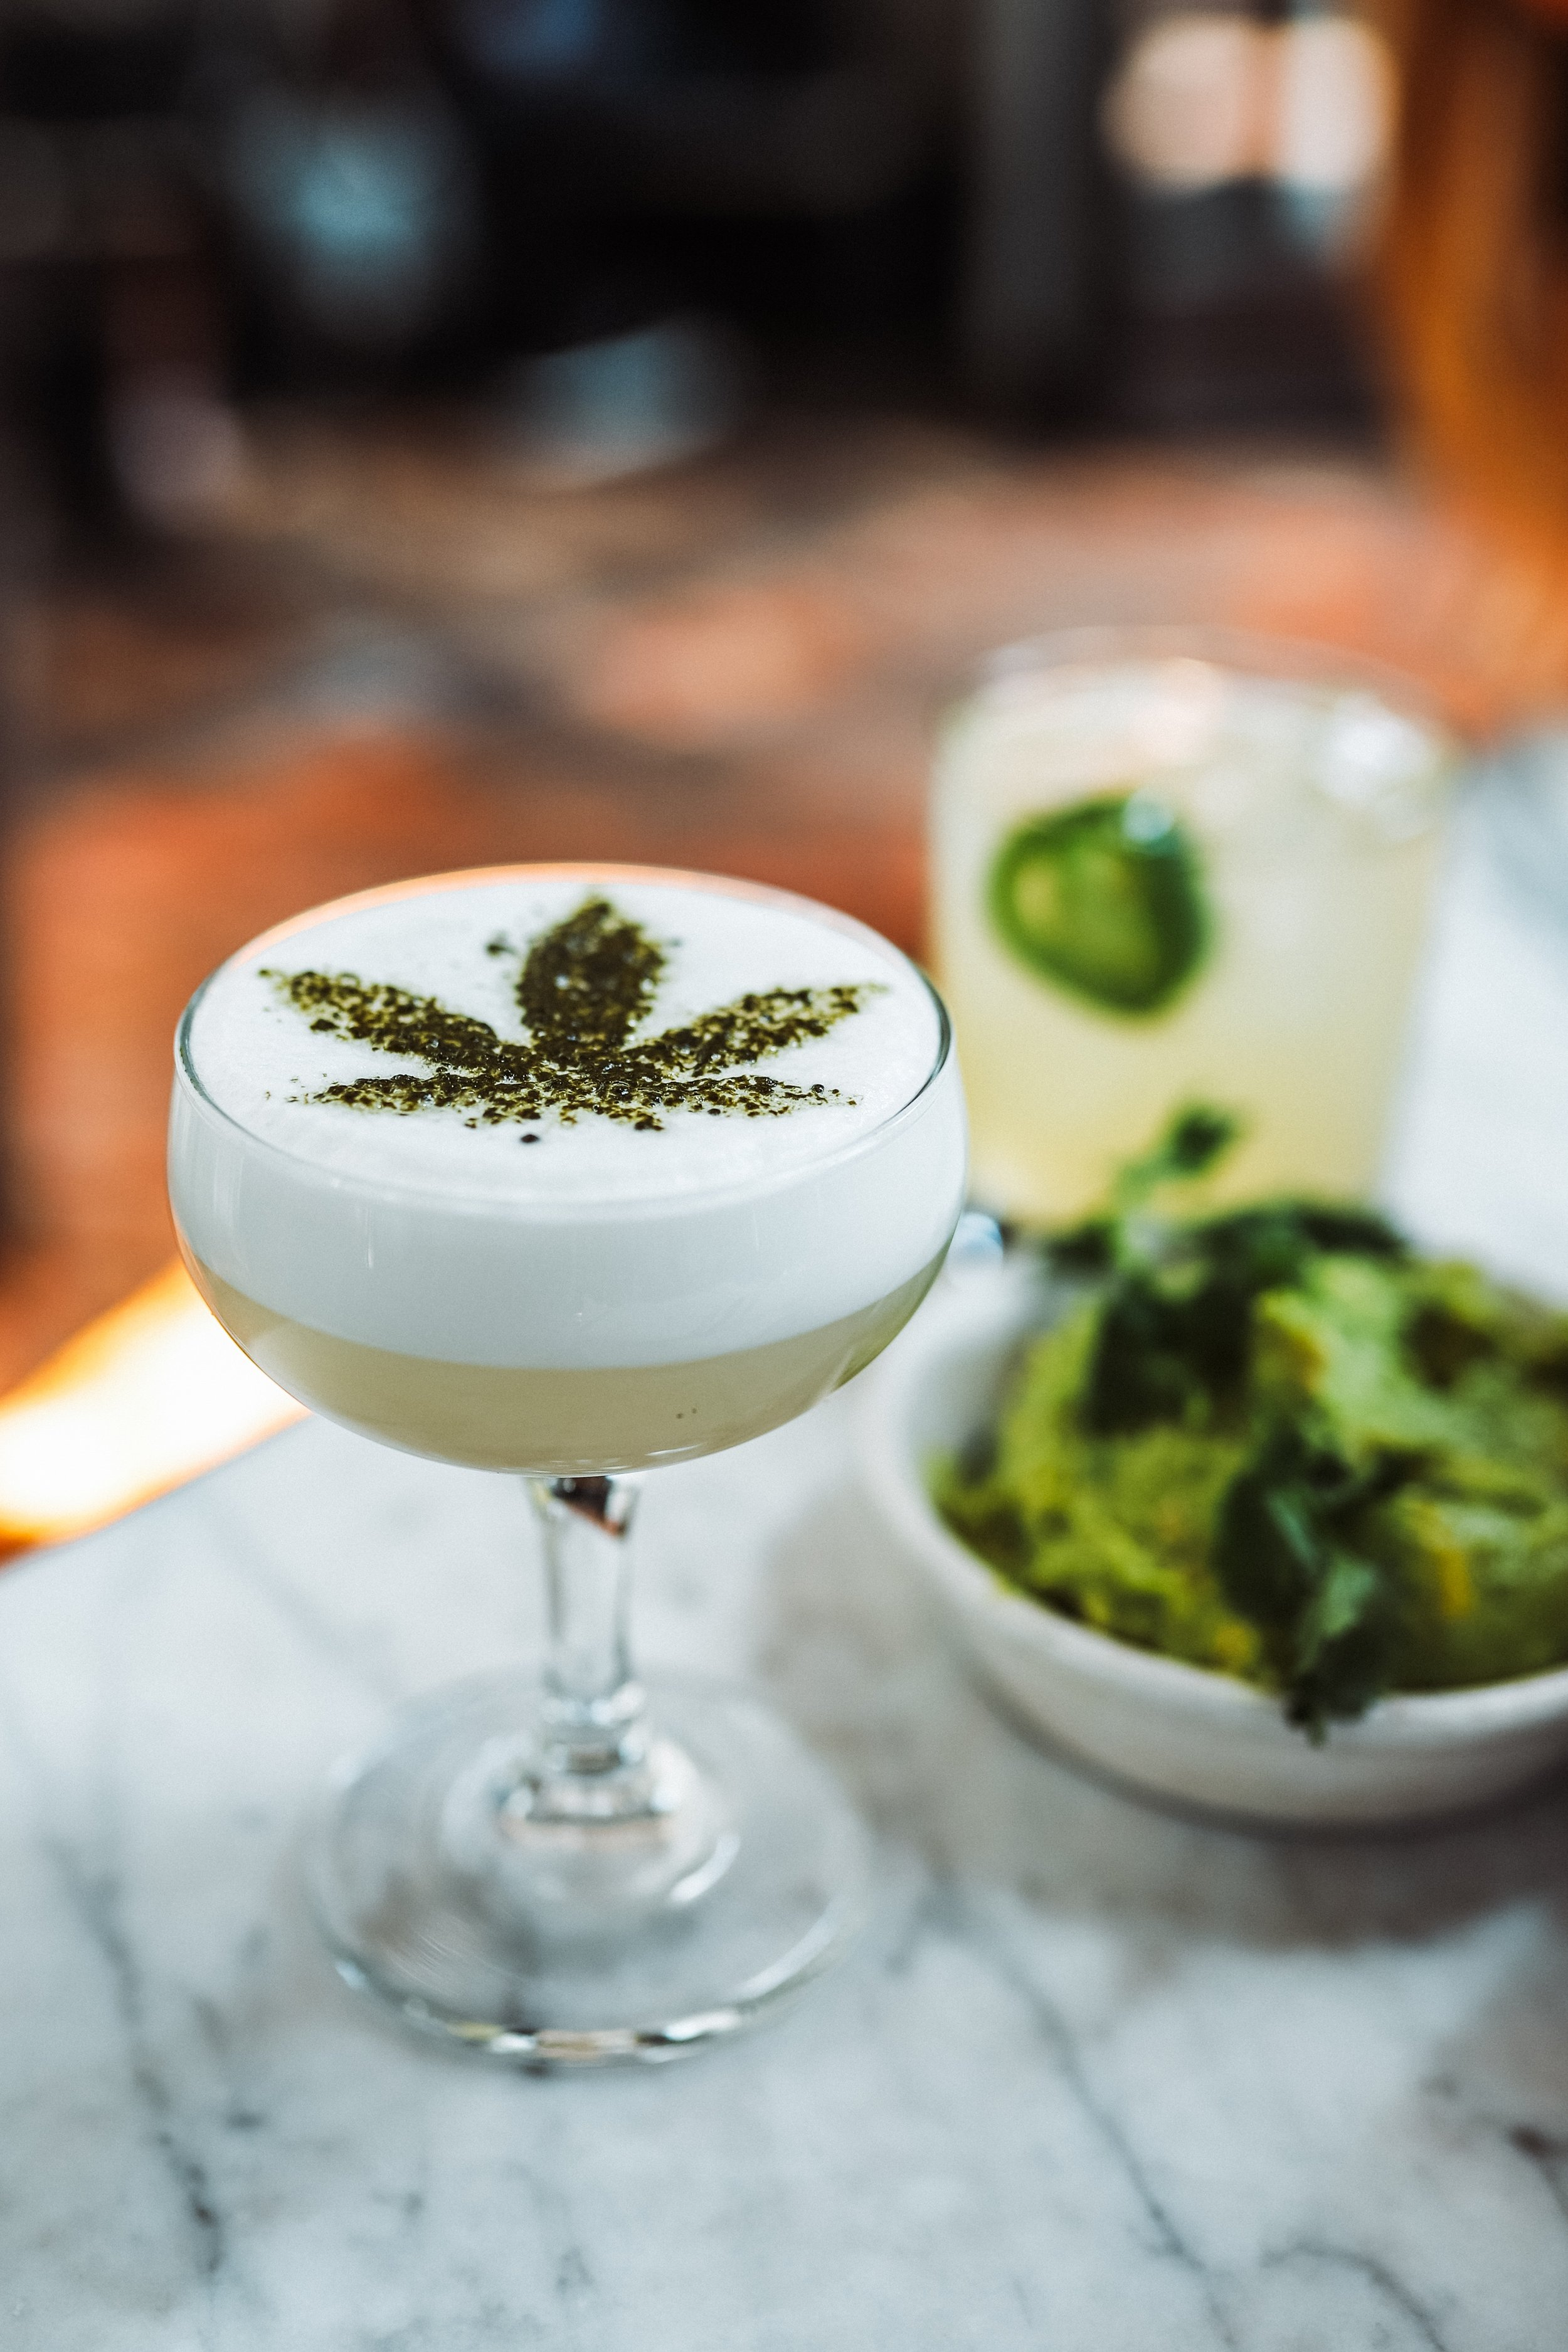 PHOTO COURTESY | Justin Aikin // CBD Handcrafted Cocktail at Gracias Madre in West Hollywood